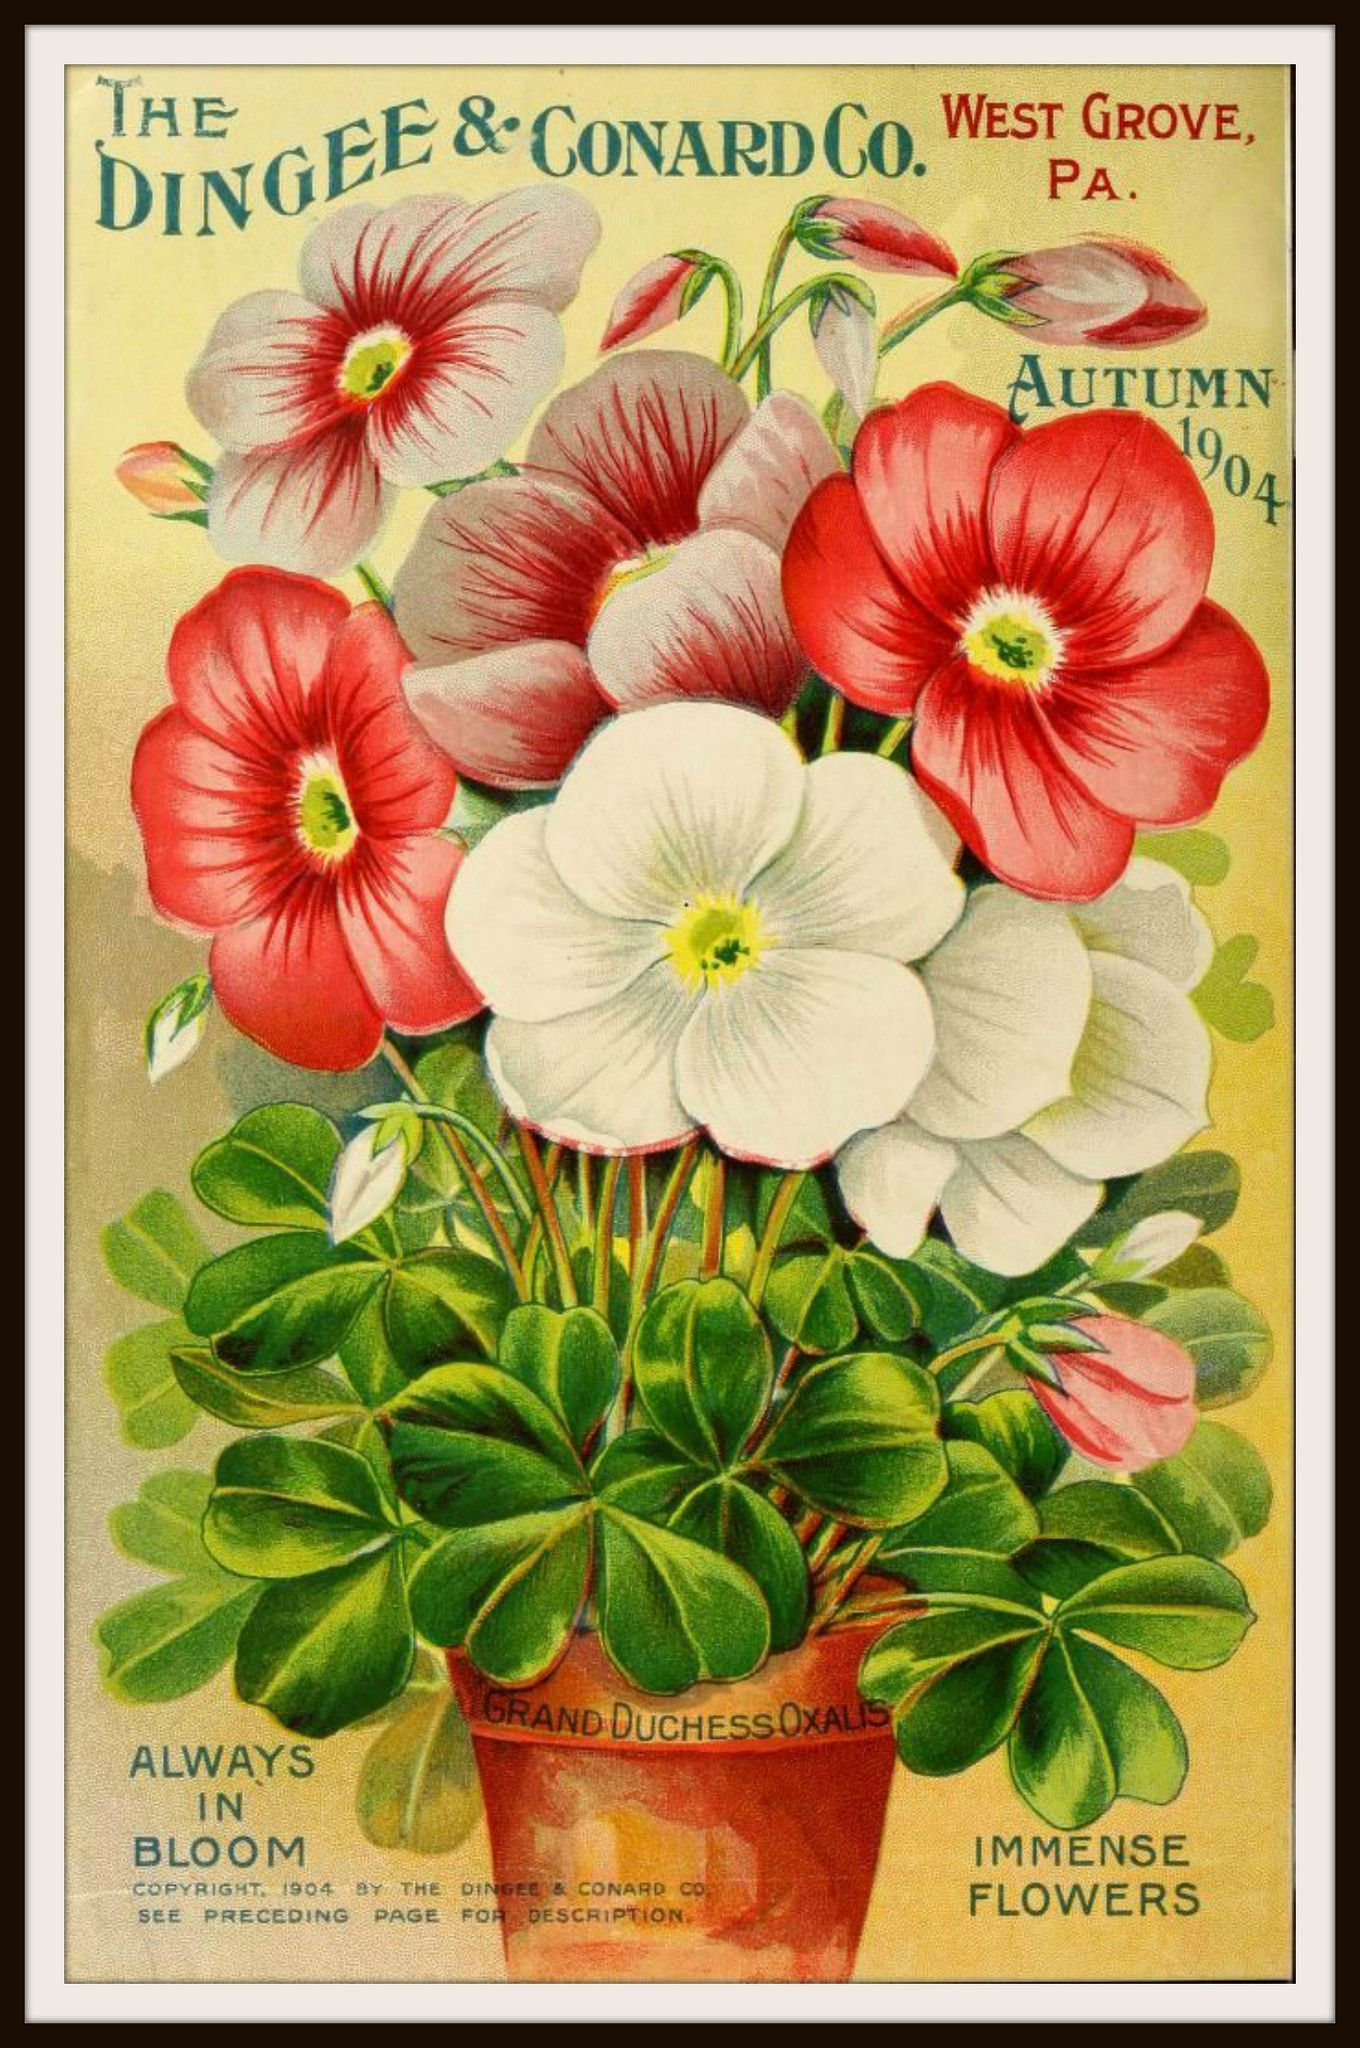 Vintage Reproduction Seed Pack Cover Art Print | Pinterest | Obst ...